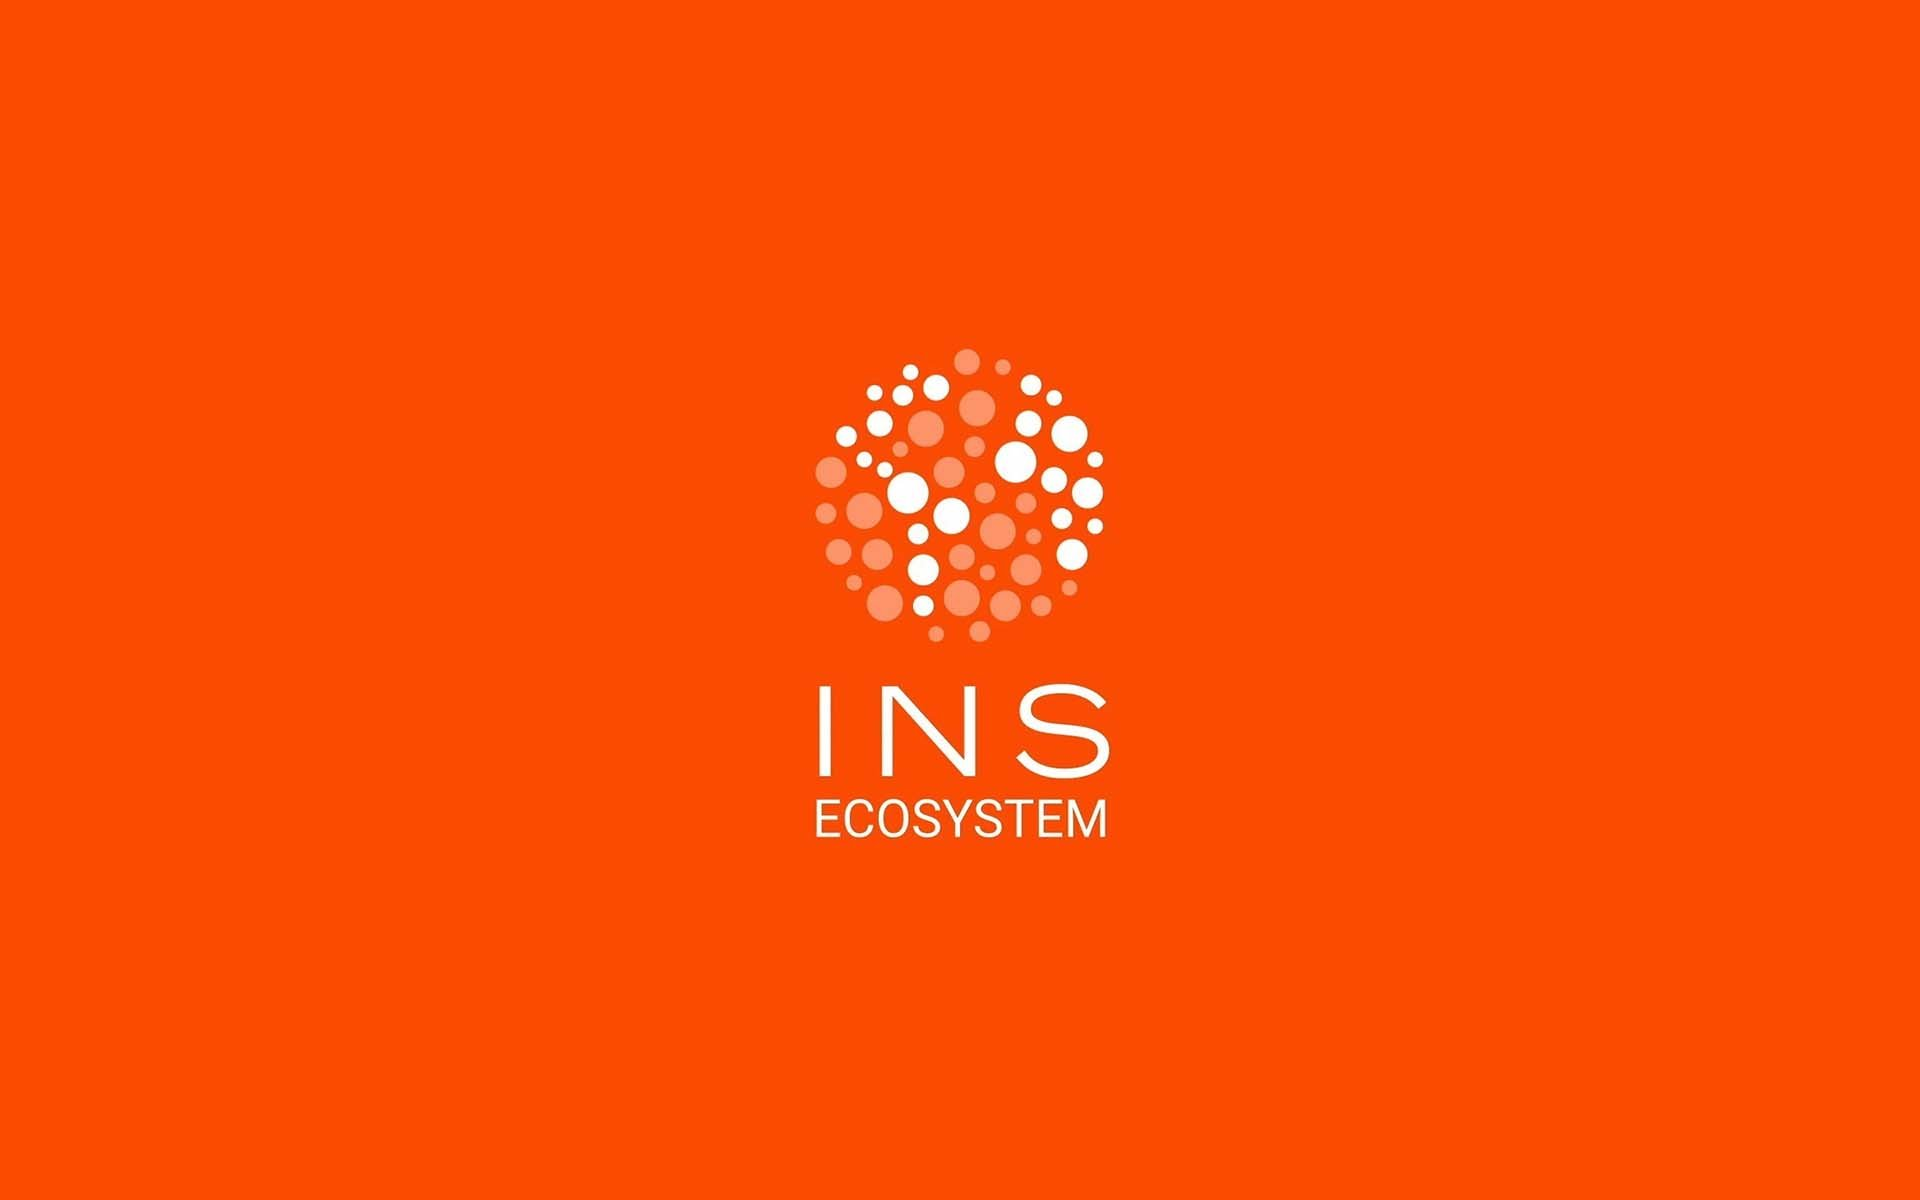 INS Ecosystem Day-One Listing Hits TOP-10 Crypto-Exchanges Including Binance, KuCoin, OKEx and others